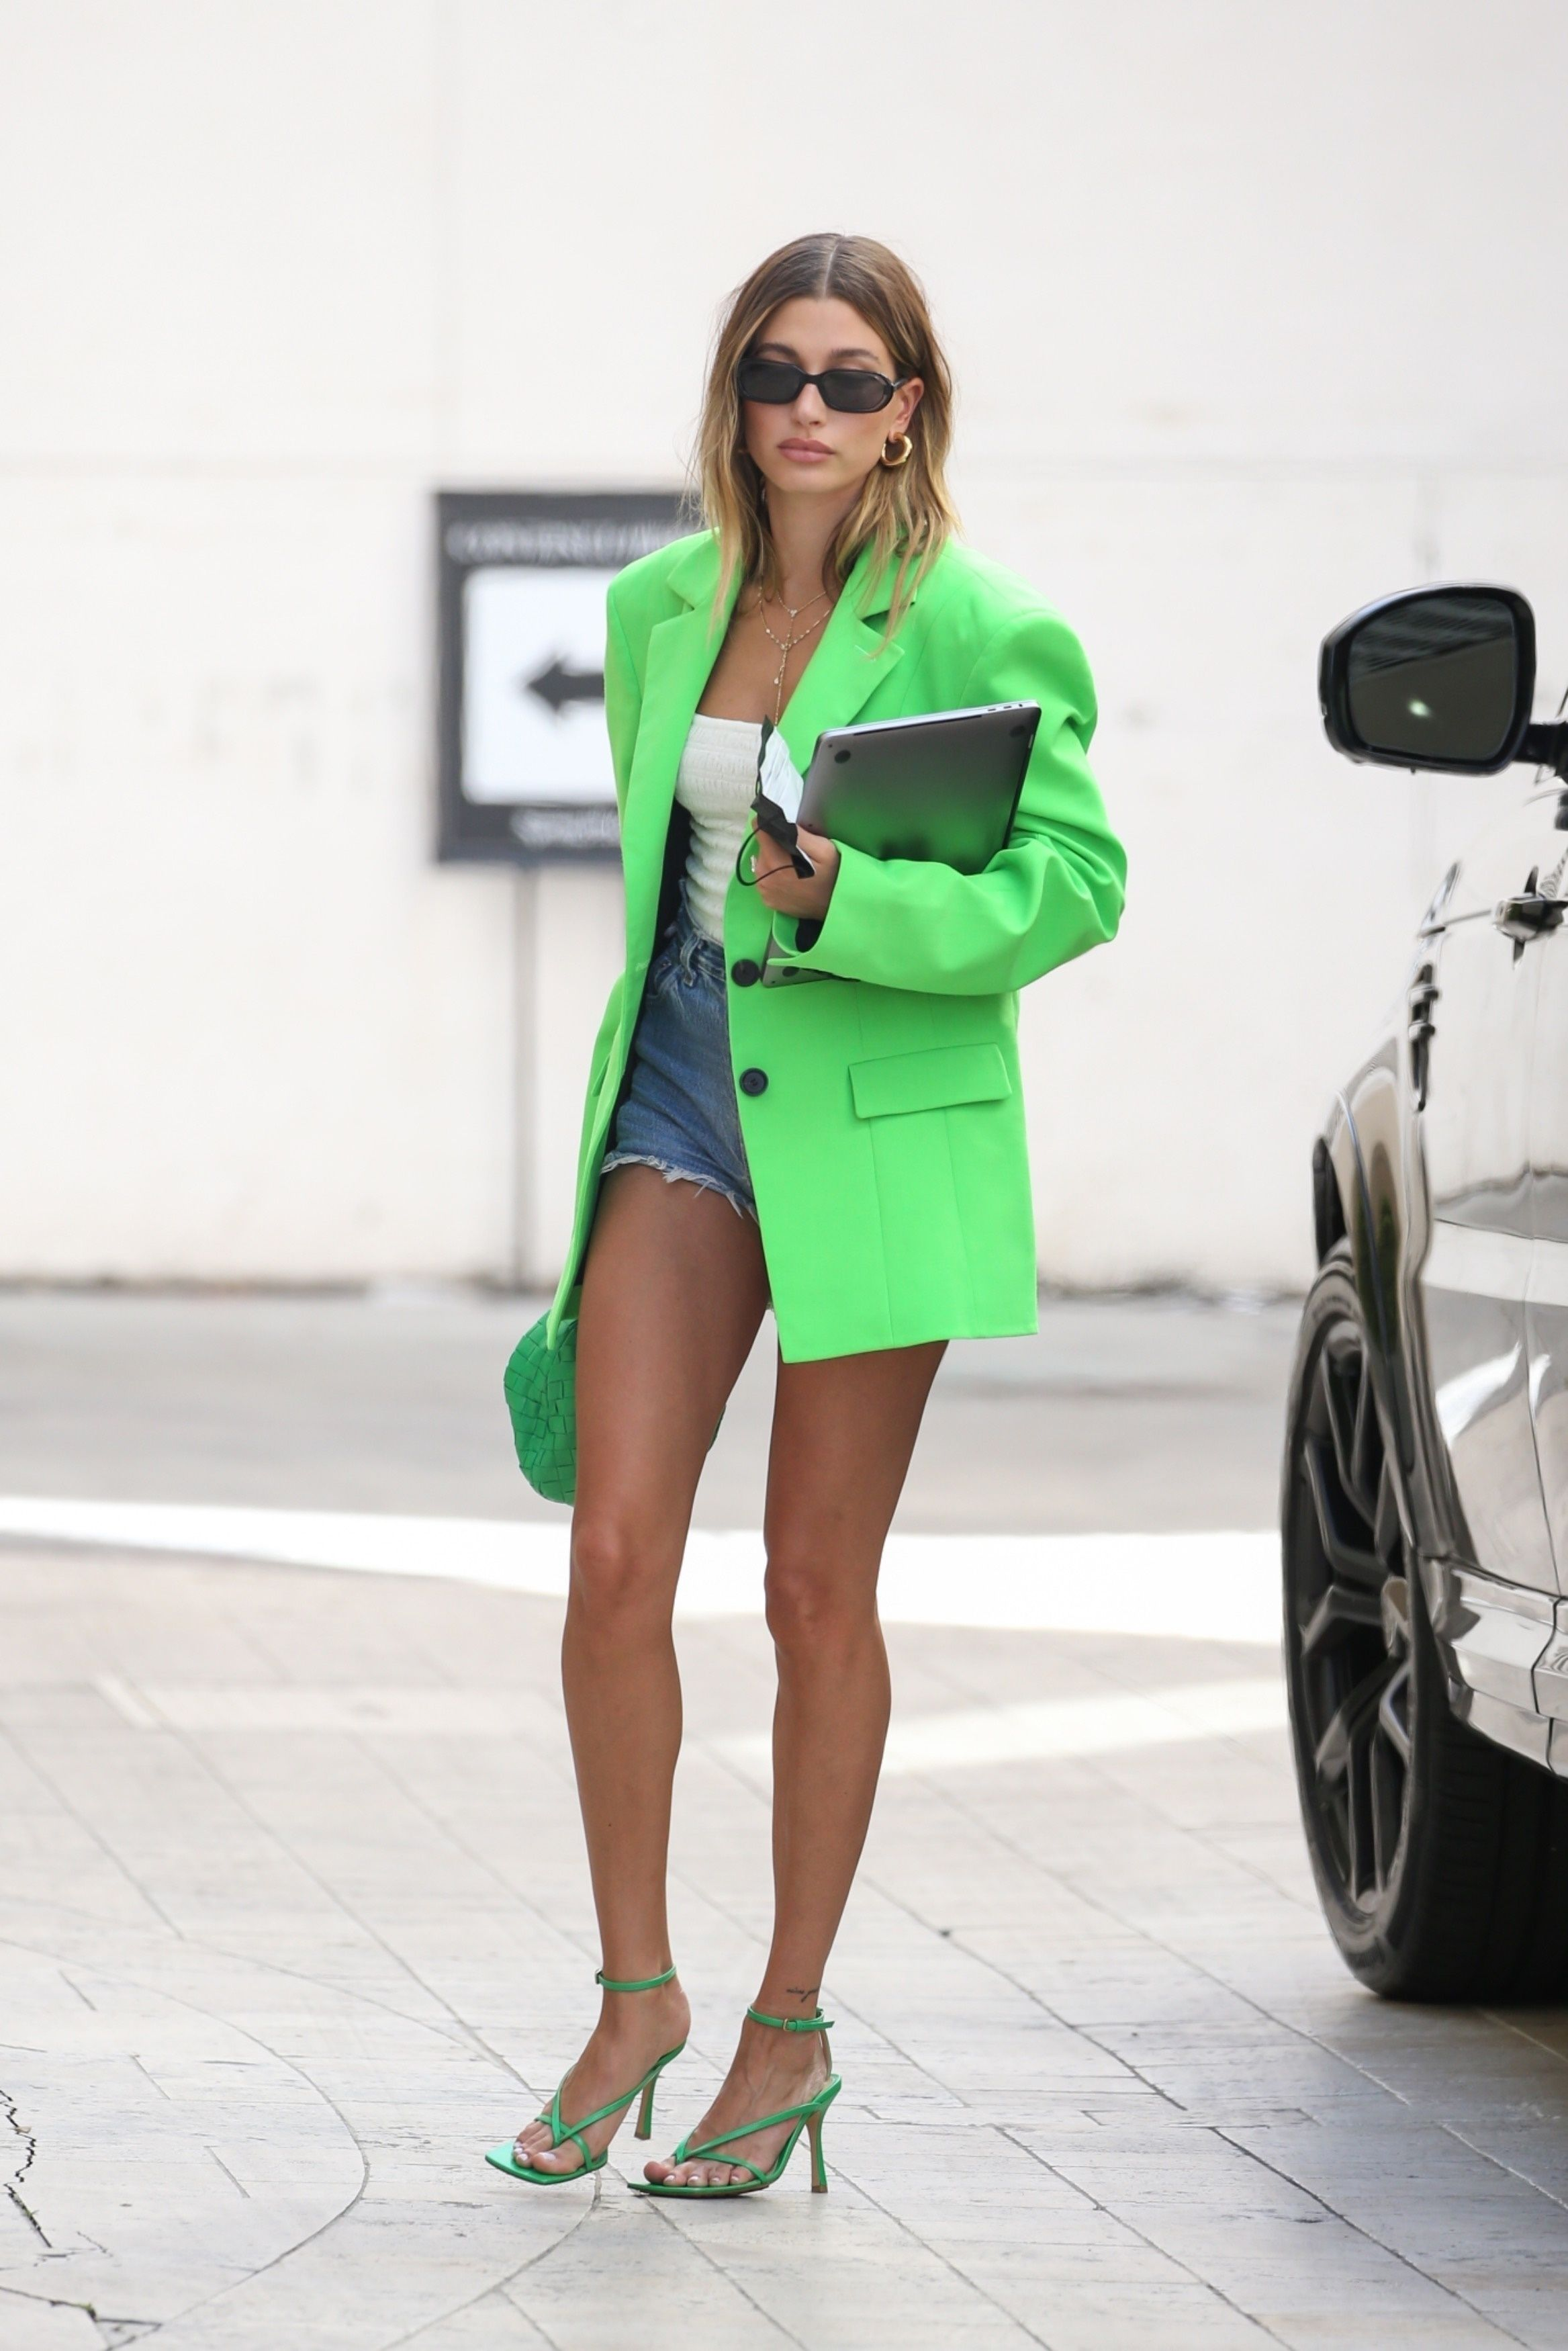 Hailey Bieber Paired Short Shorts With a Neon Green Blazer and Heels for a Business Meeting